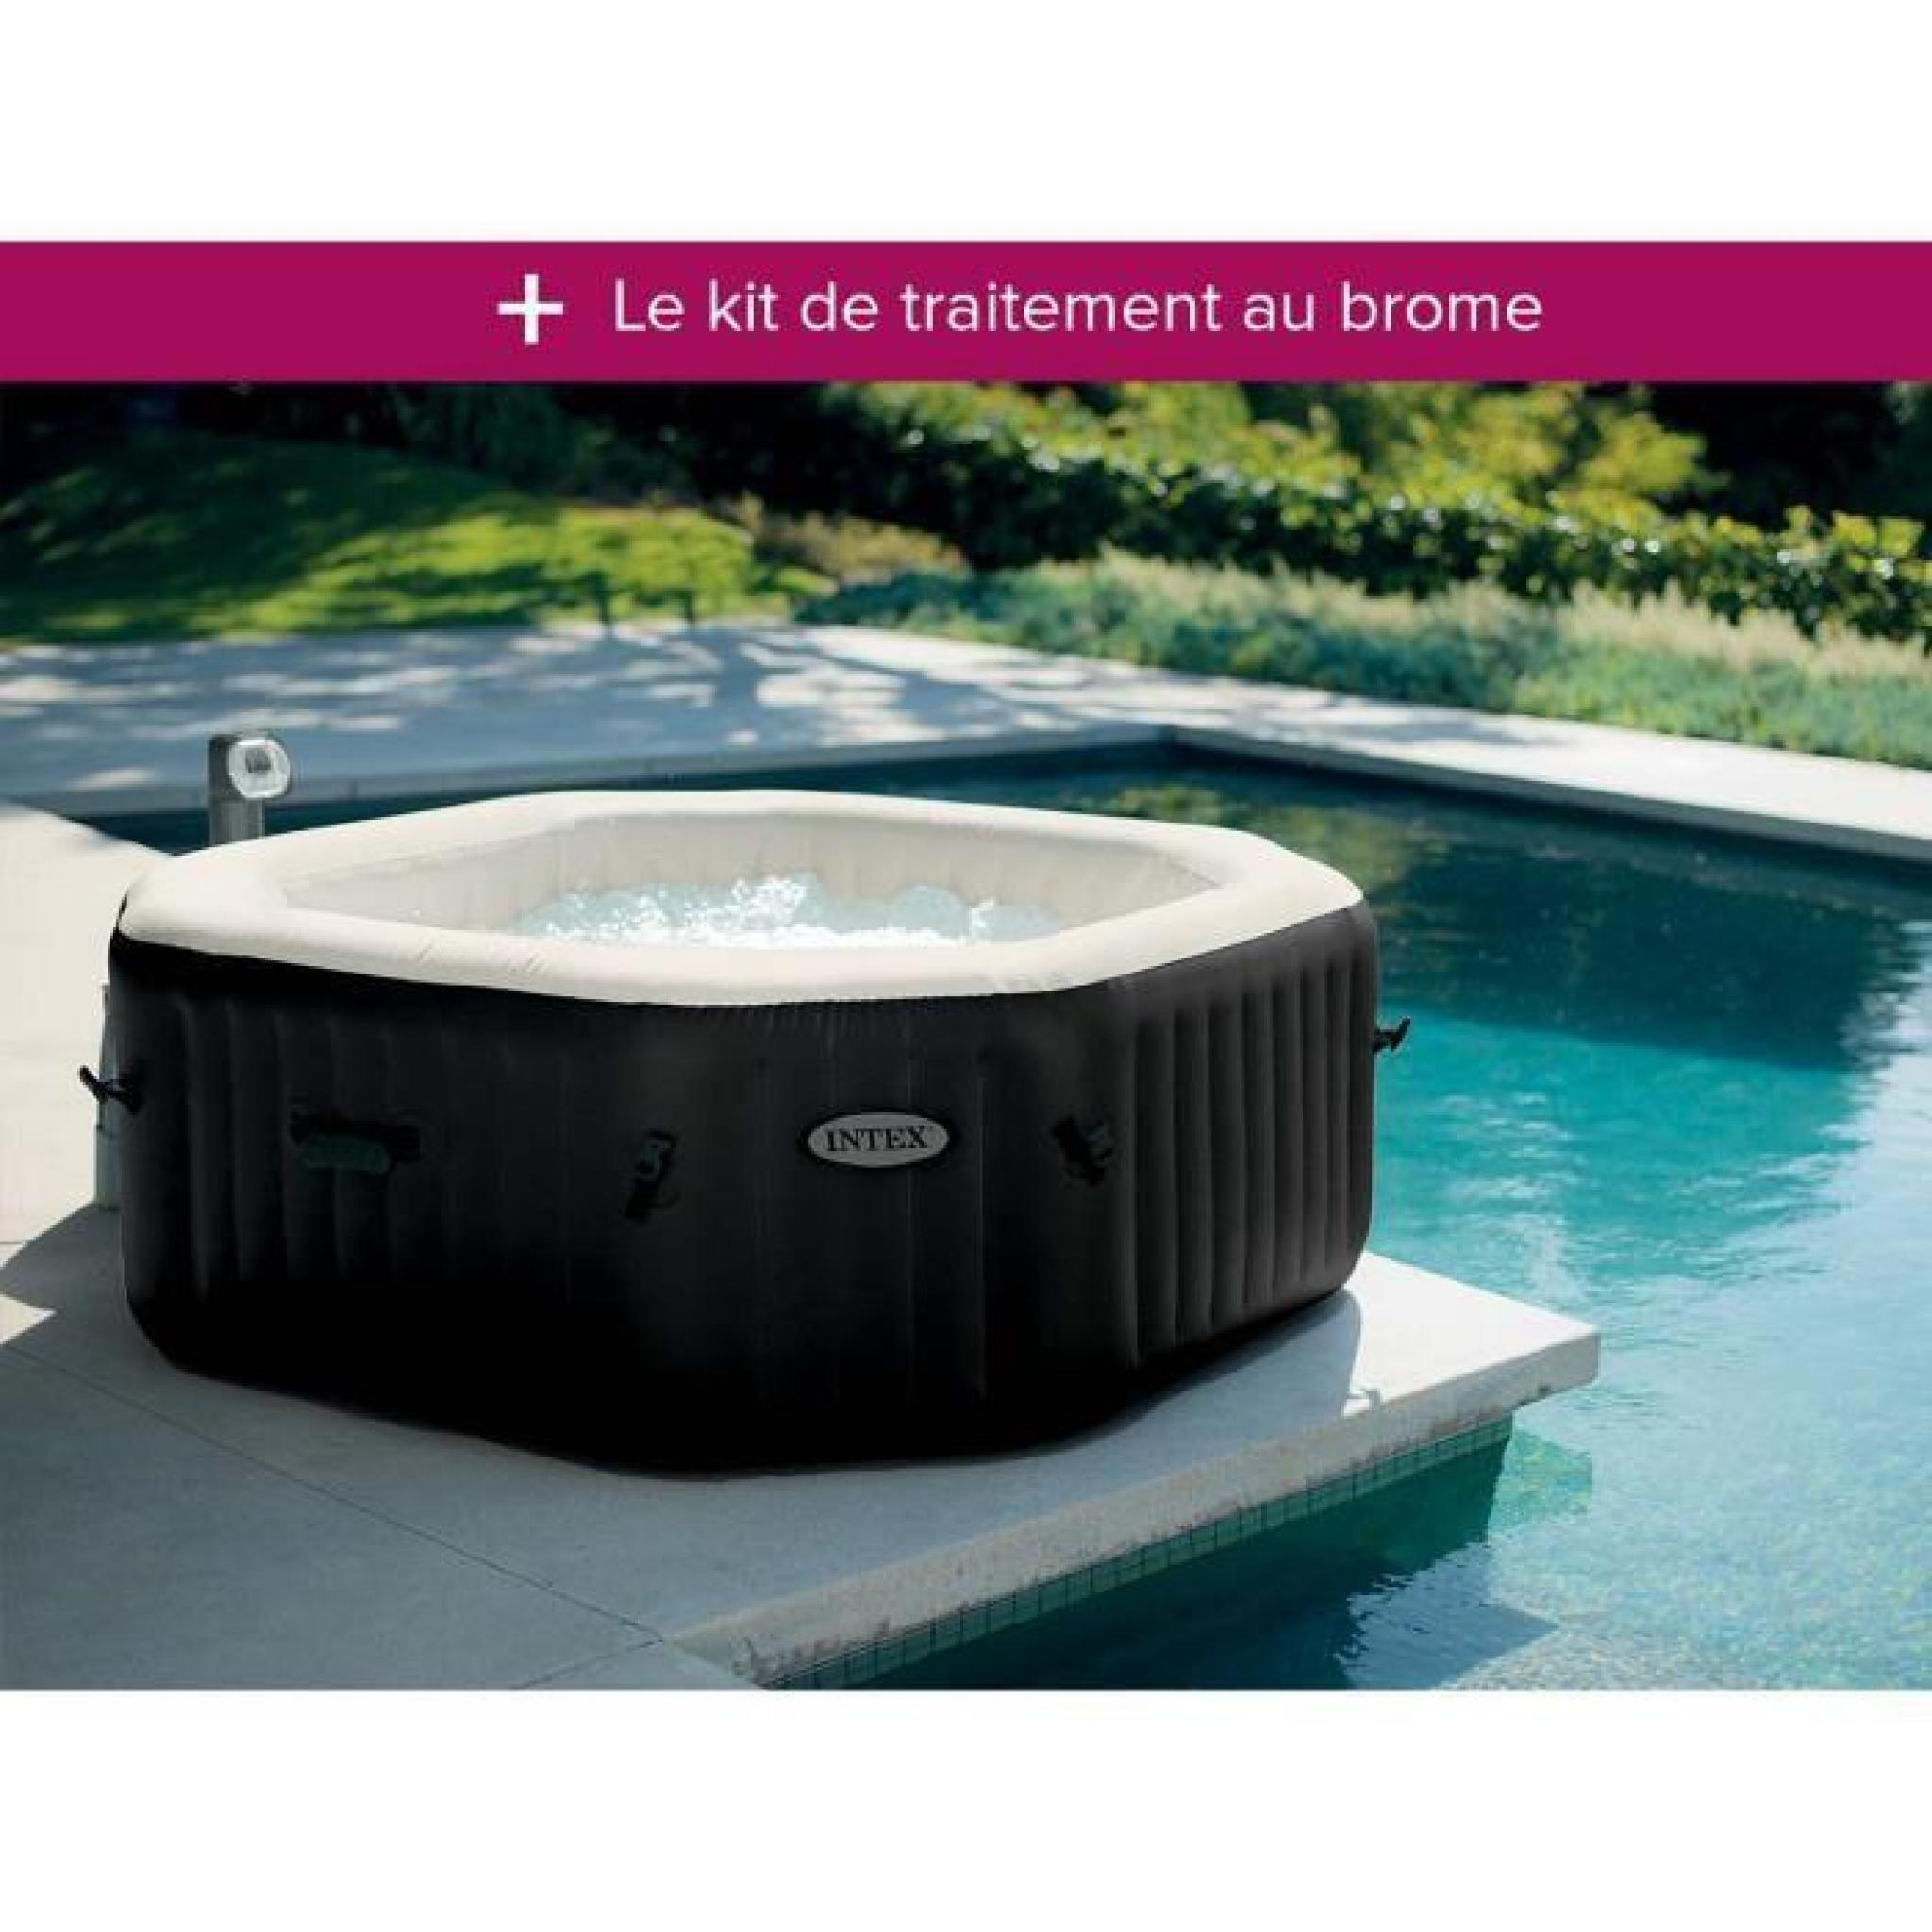 spa gonflable intex purespa octogonal bulles jets 6 places achat vente jacuzzi pas cher. Black Bedroom Furniture Sets. Home Design Ideas